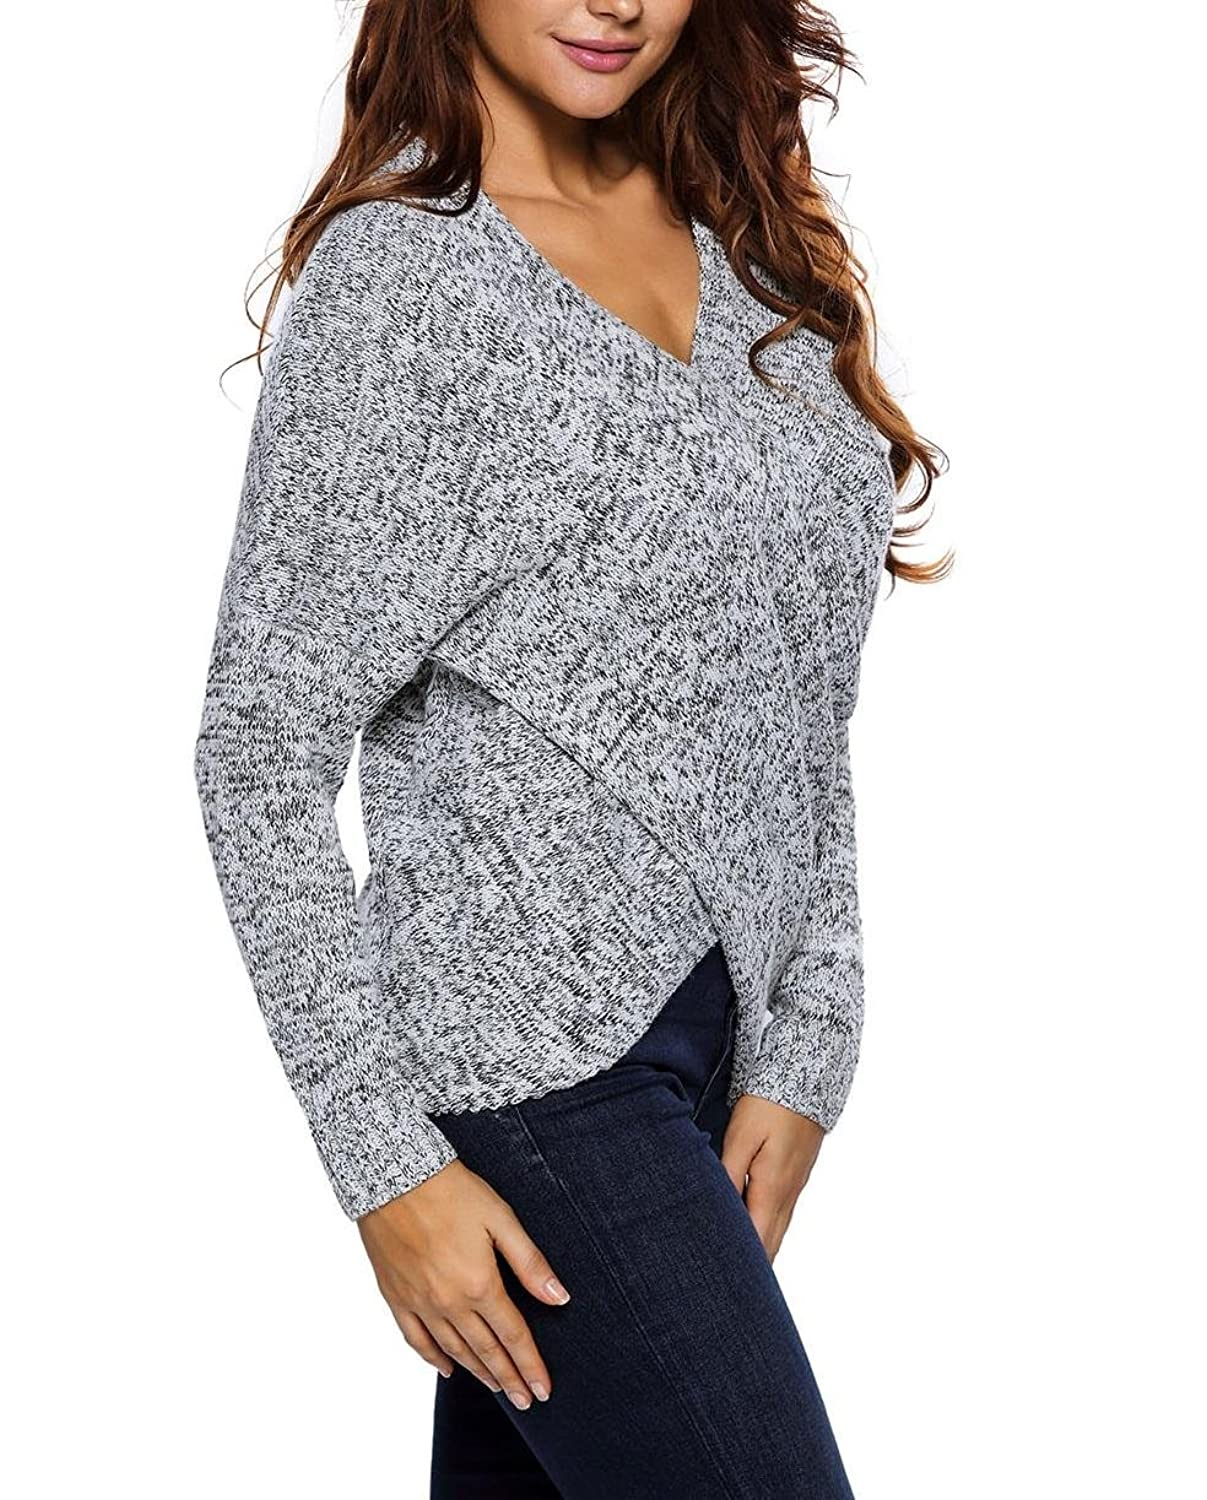 Booty Gal Women's Casual Chunky Cross Wrap V Neck Tunic Pullovers Sweater